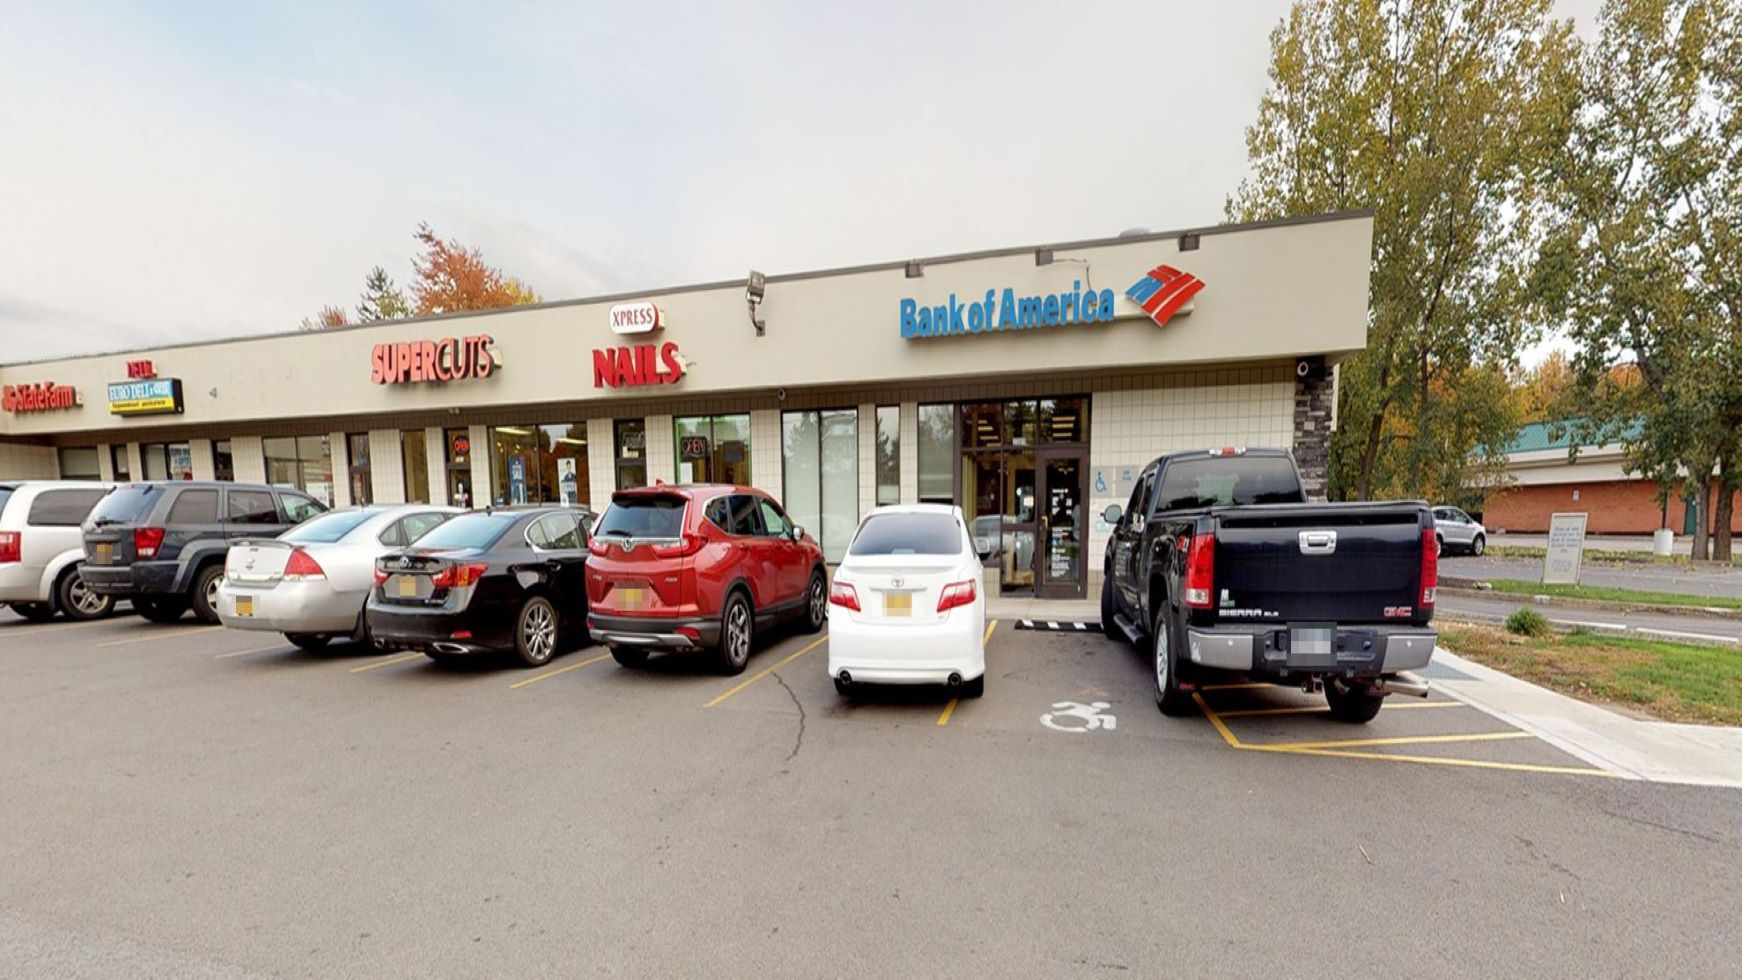 Bank of America financial center with walk-up ATM | 2305 Millersport Hwy, Getzville, NY 14068